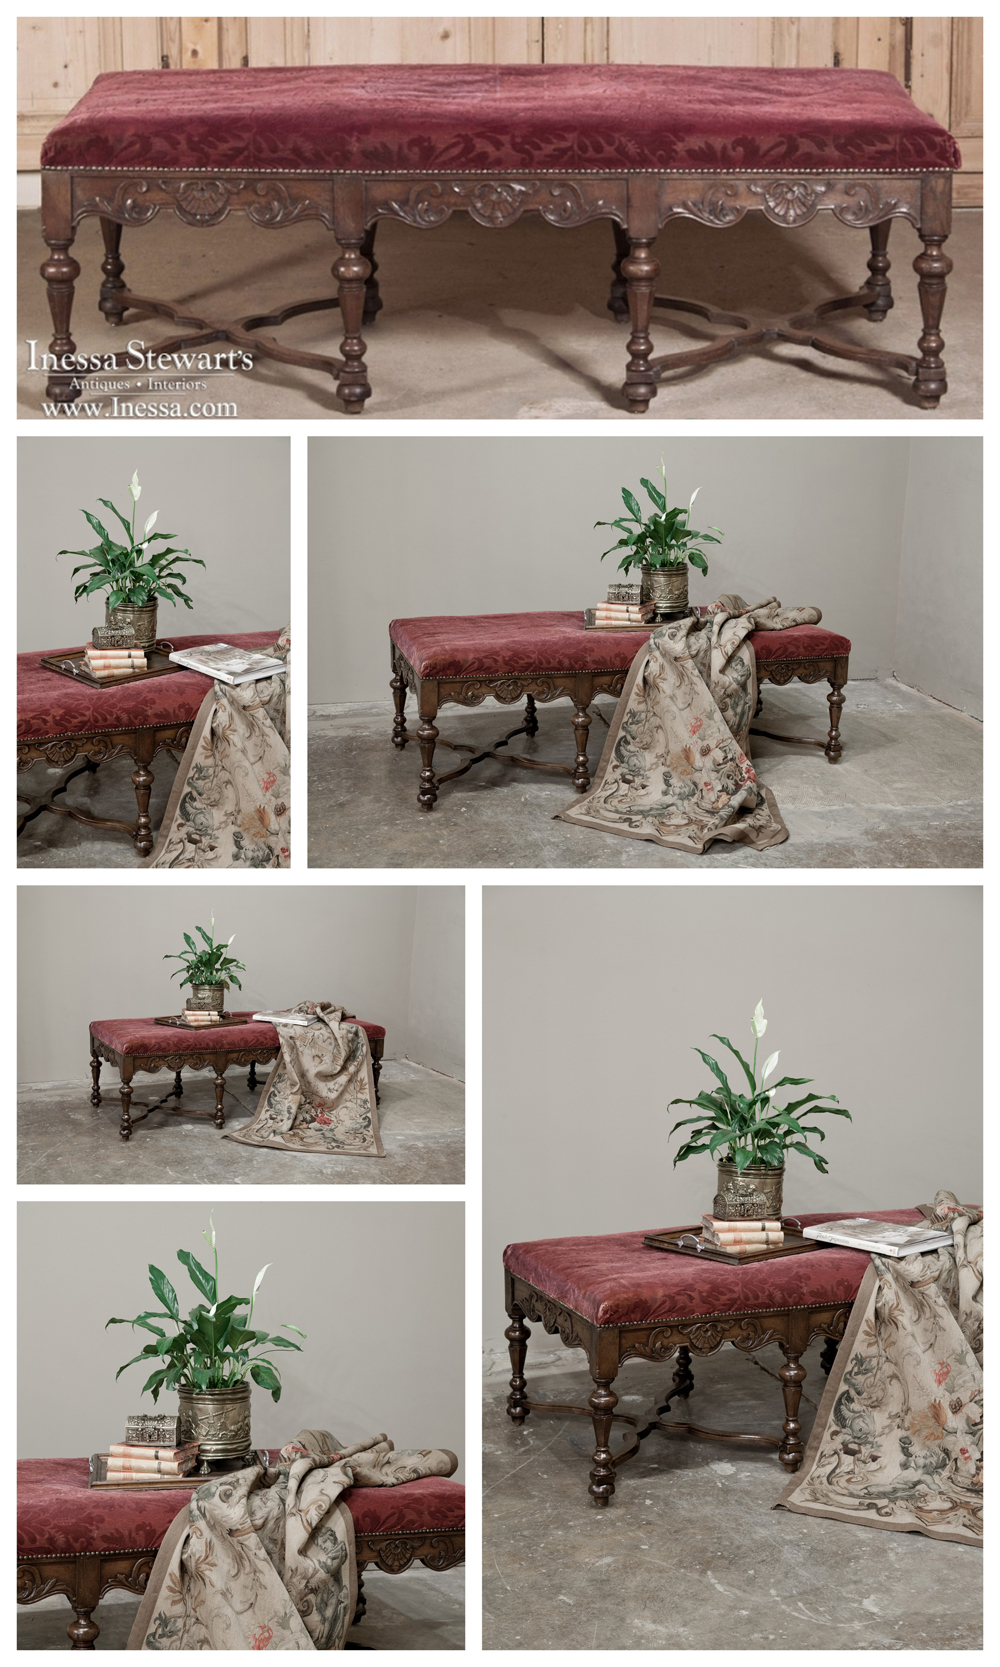 Antique French Furniture Upholstered Bench